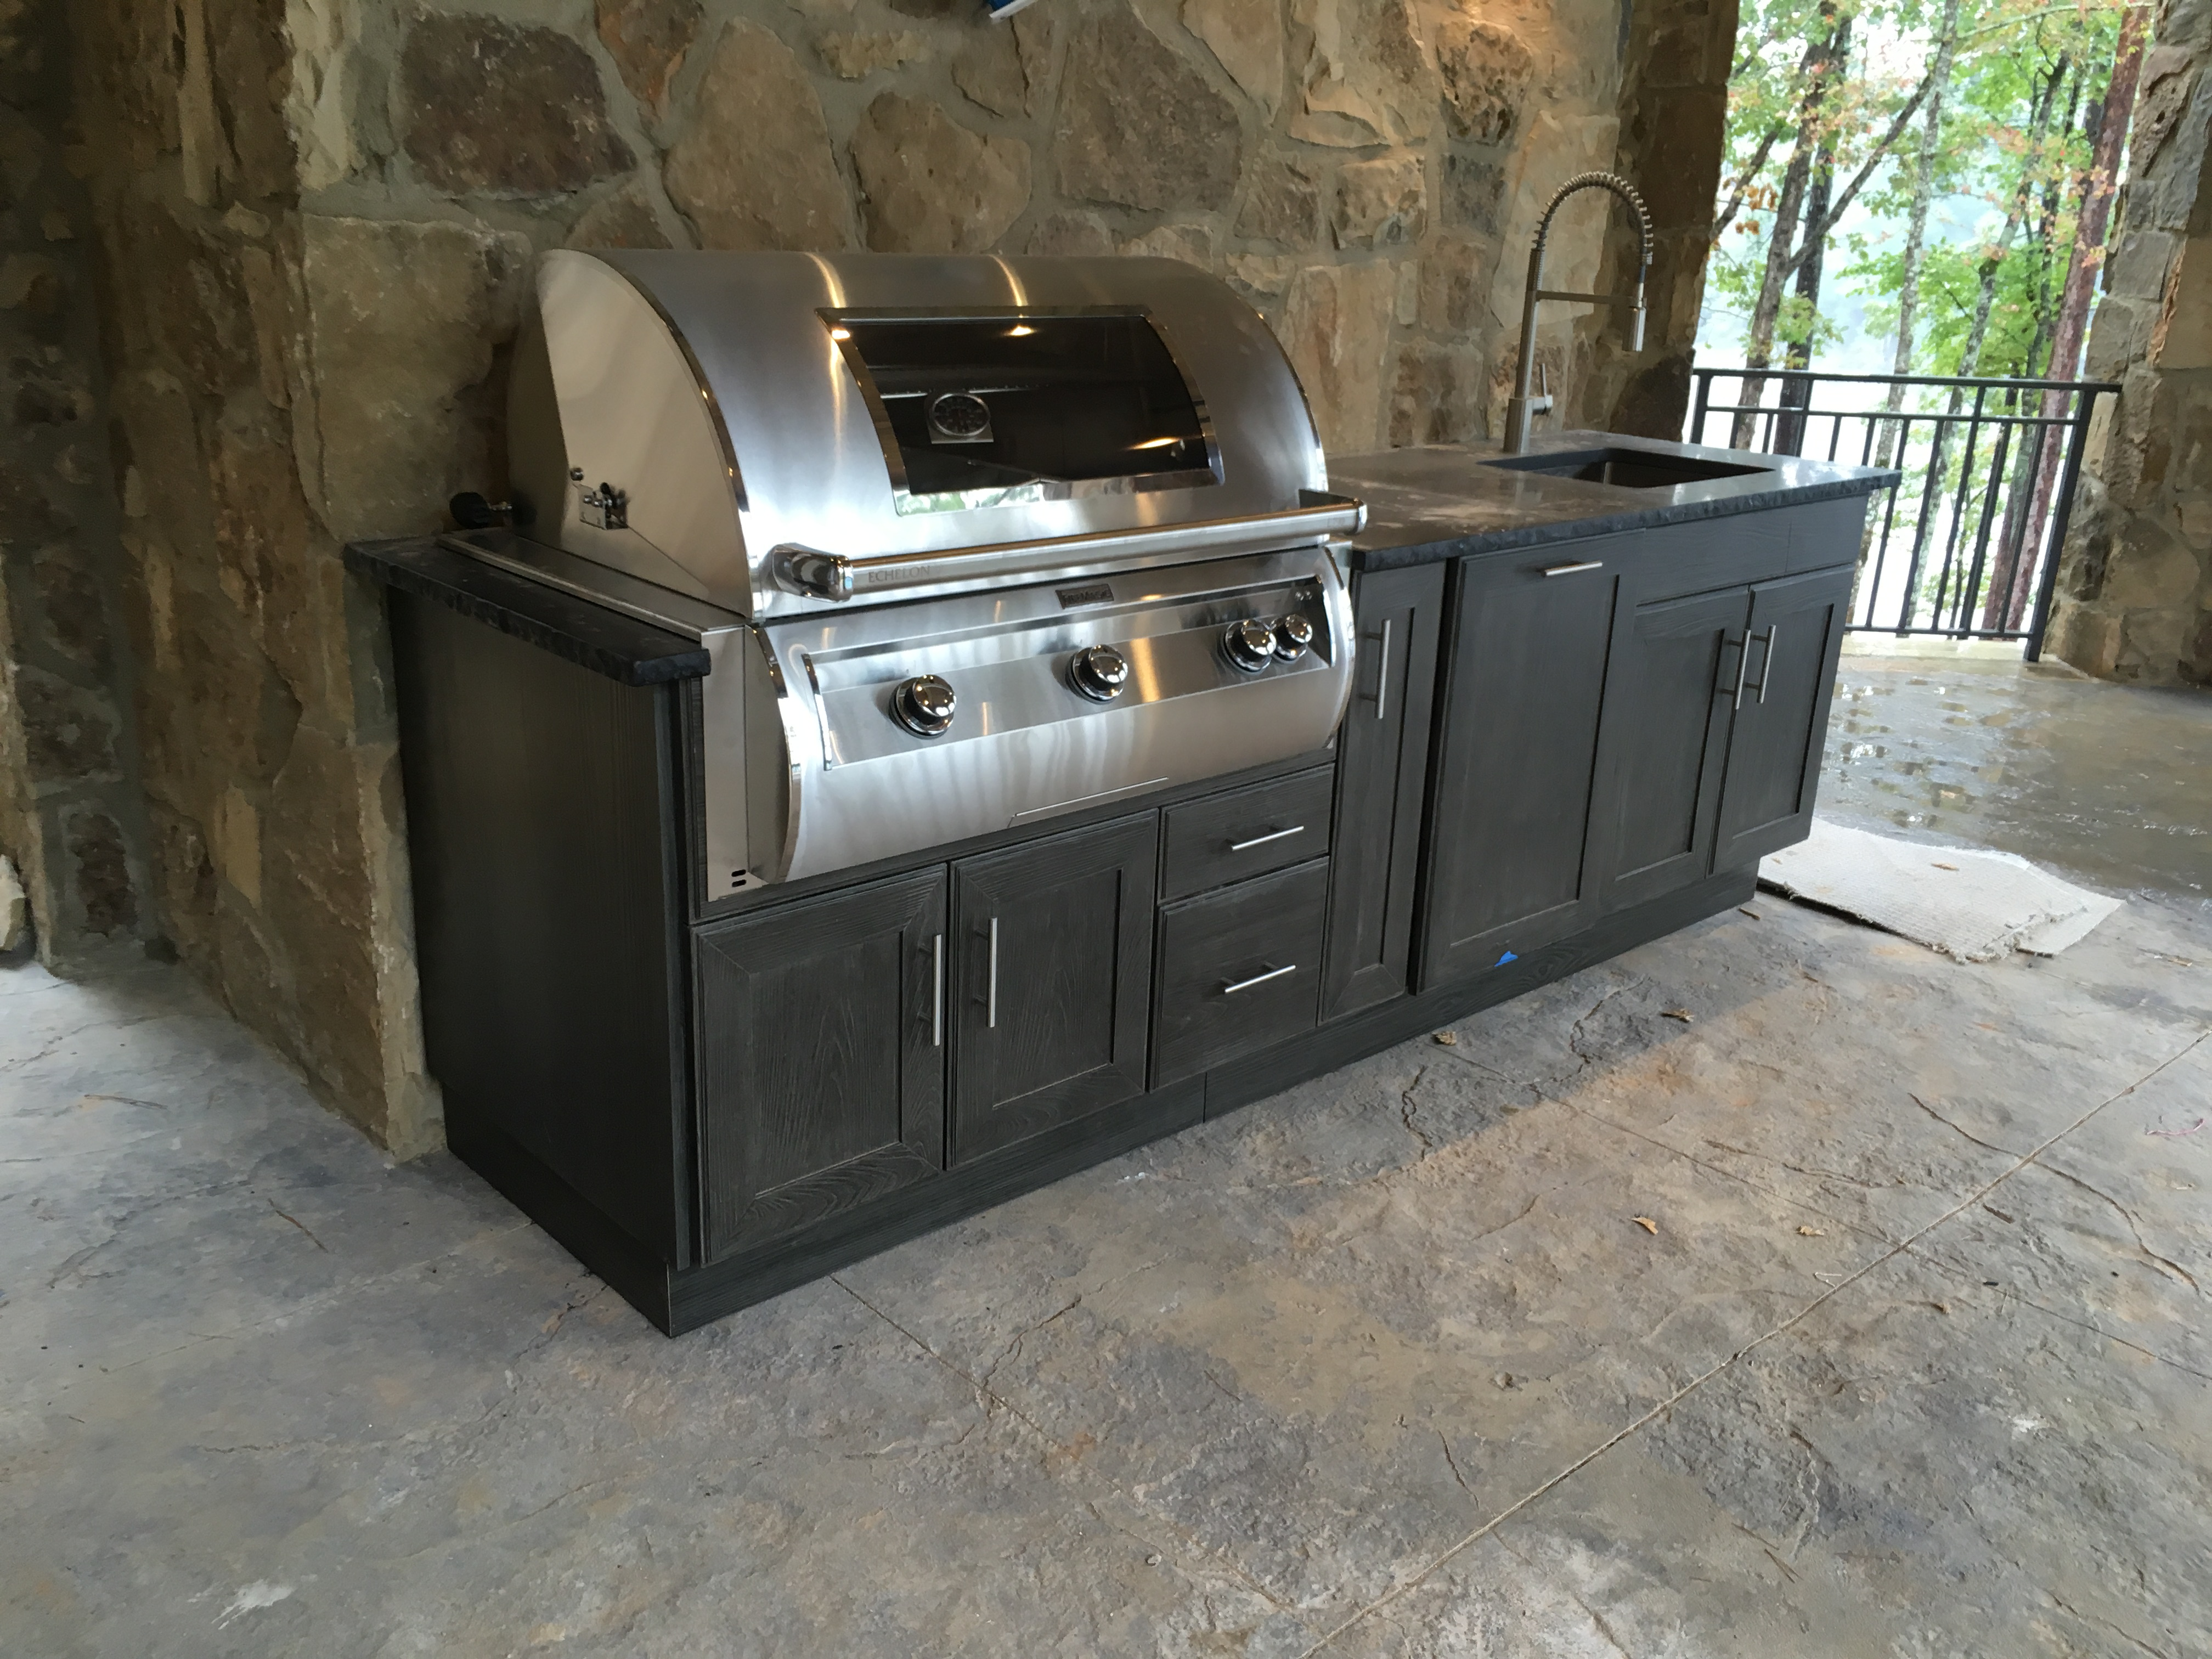 Naturekast Outdoor Summer Kitchen Cabinet Gallery: Outdoor Grills 101... How To Make The Long Term Buying Decision